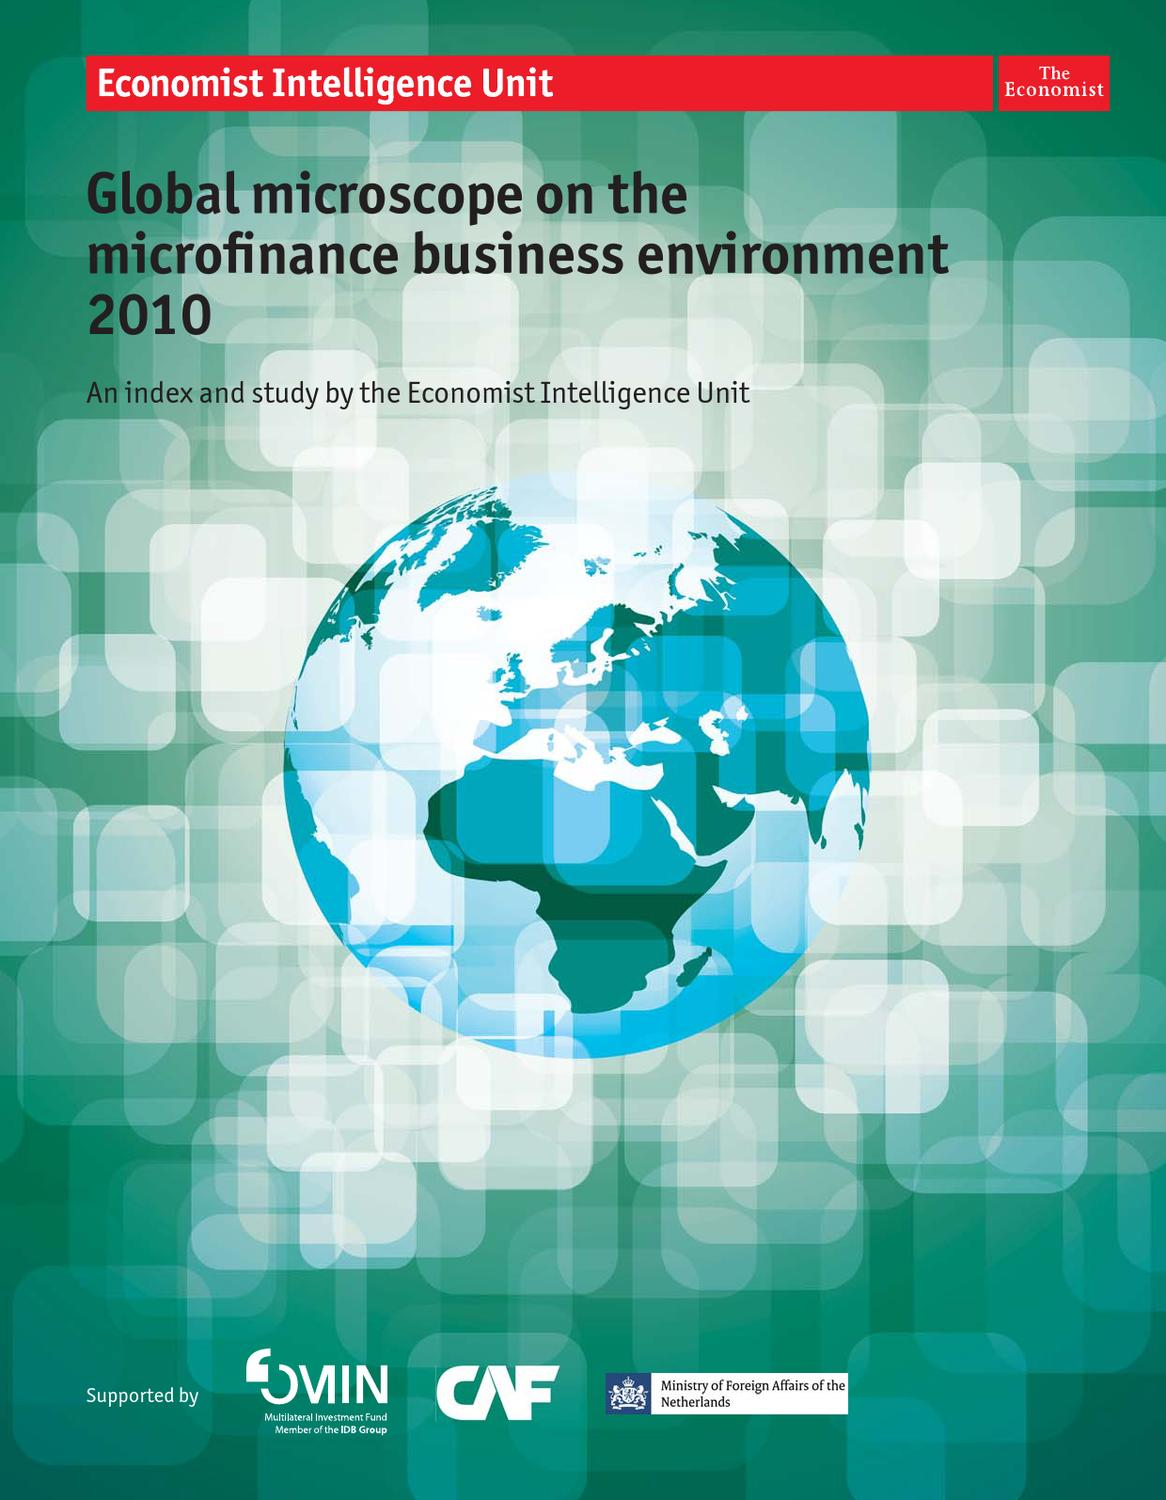 global microscope on the microfinance business environment